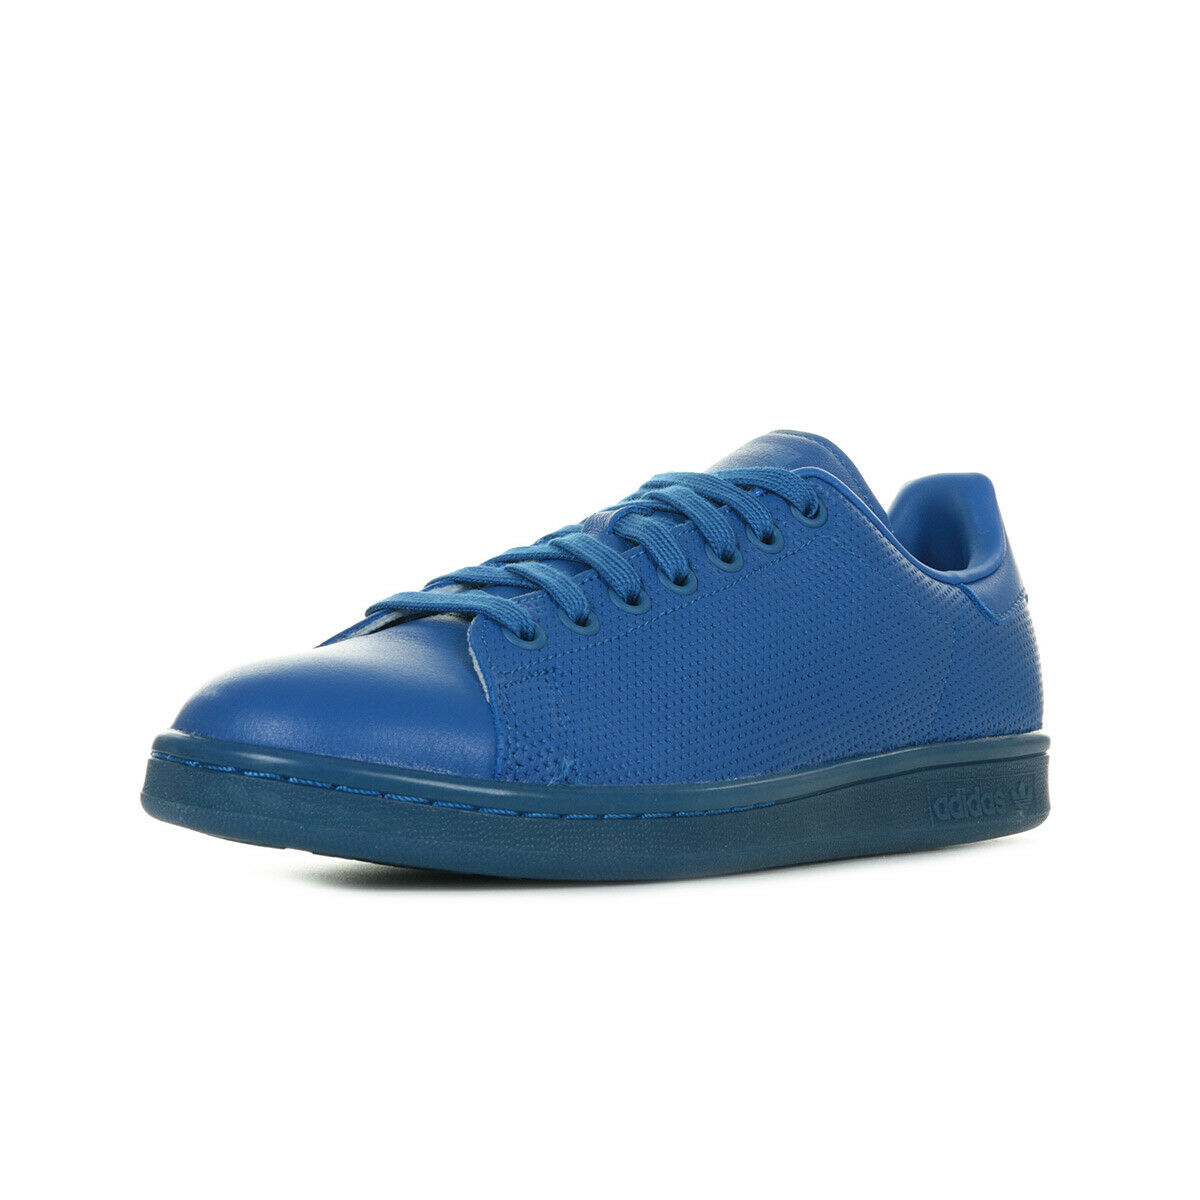 chaussures adidas neo saumon femme